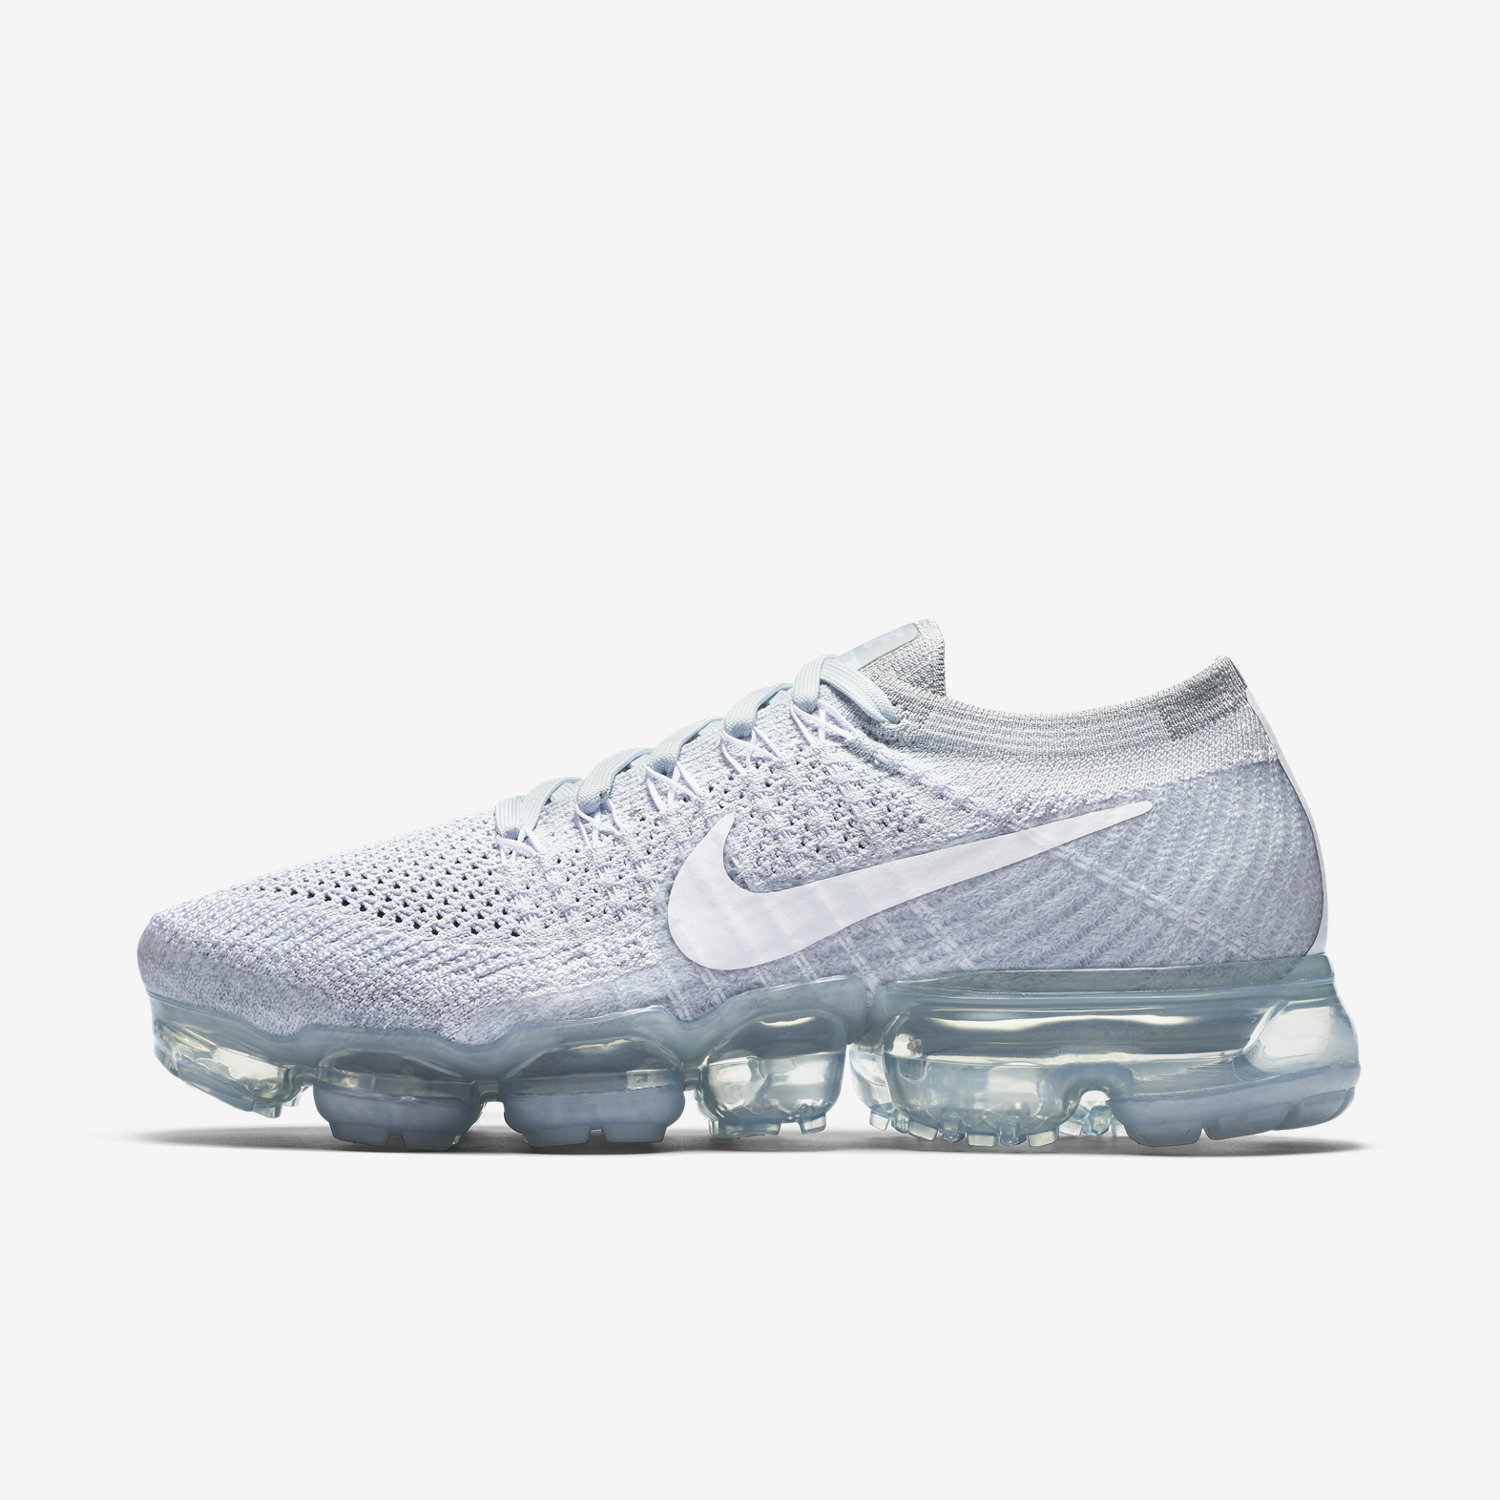 huge discount 6c7c6 53a3a zapatillas nike air max mujer dexter